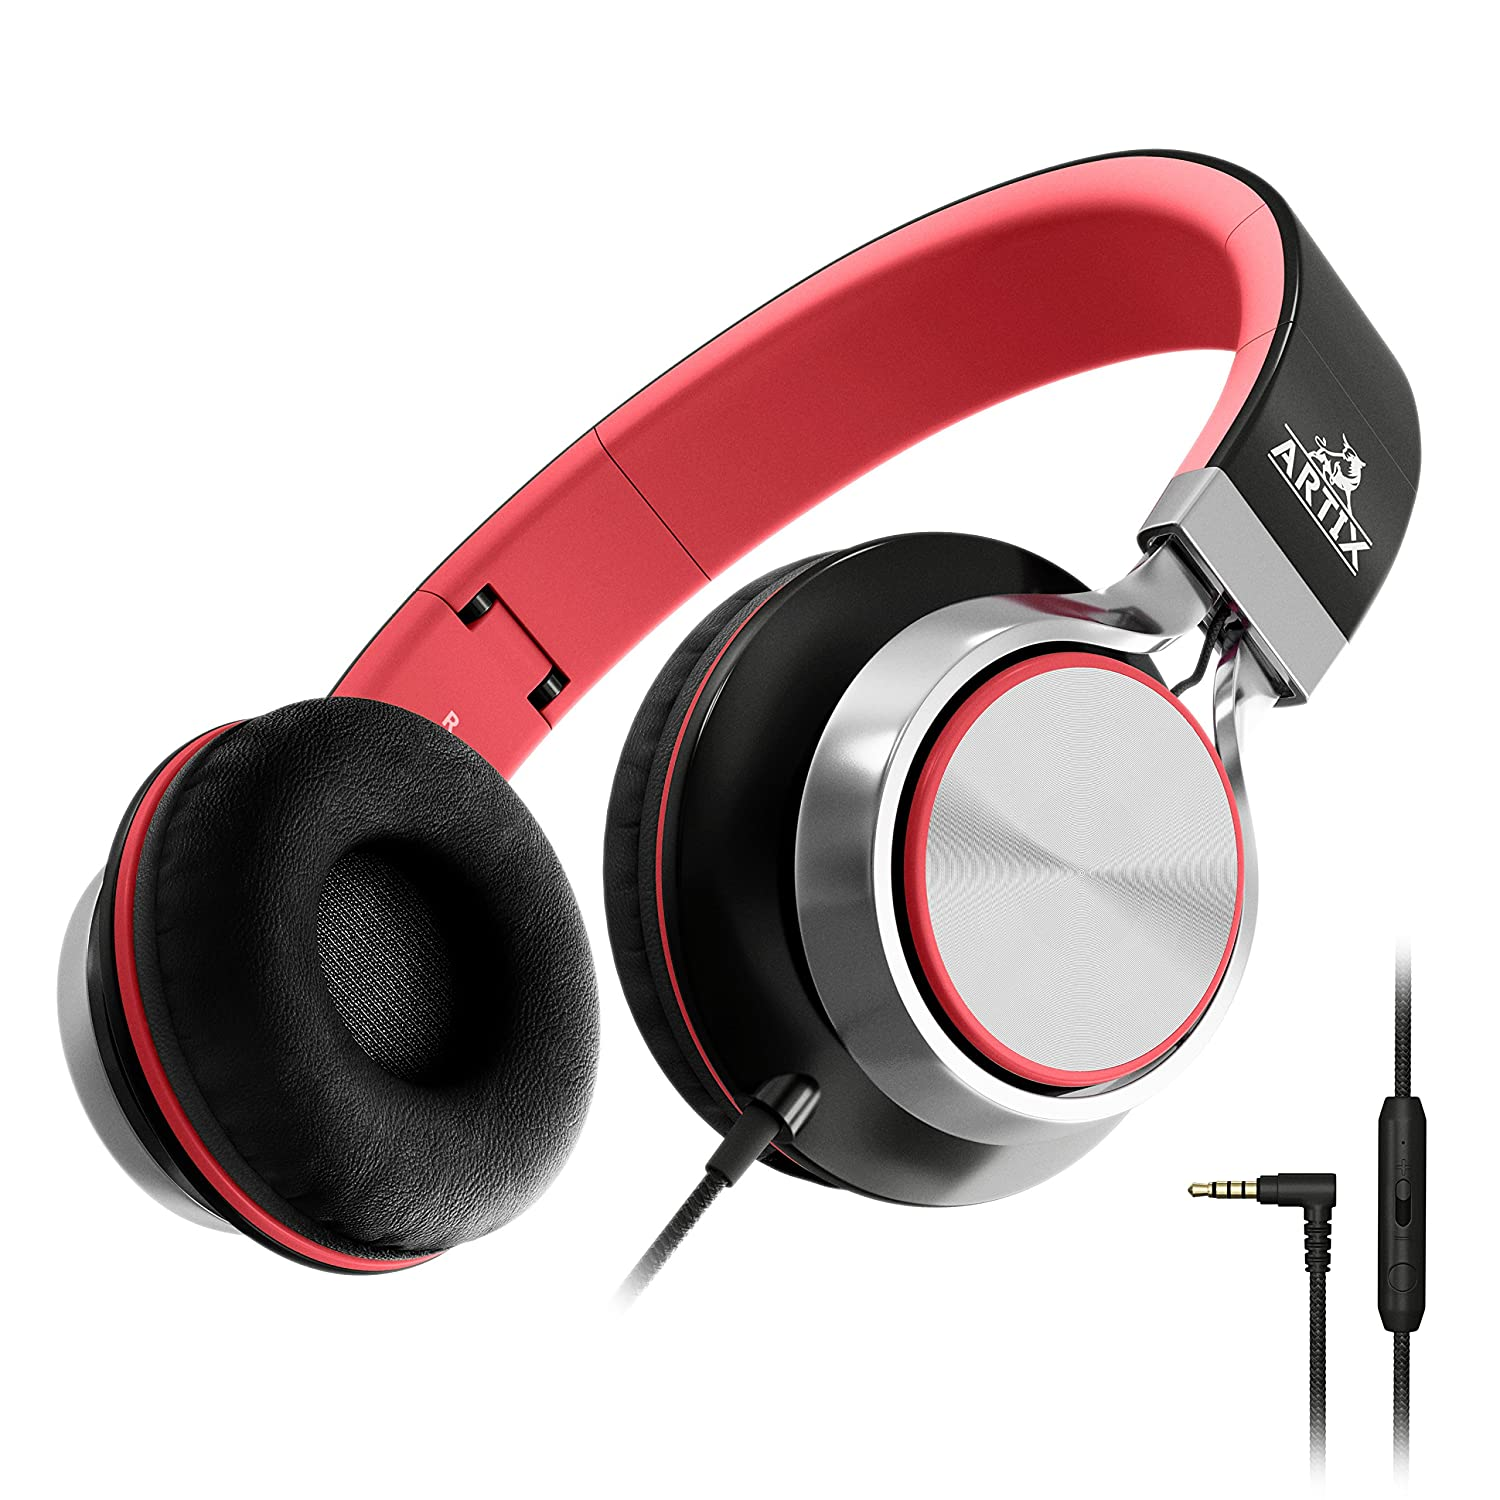 Artix Foldable Headphones With Microphone And Volume Control | Nrg Sound Cl750 On Ear Stereo Earphones | Great For Kids/Teens/Adults (Black/Red) by Artix